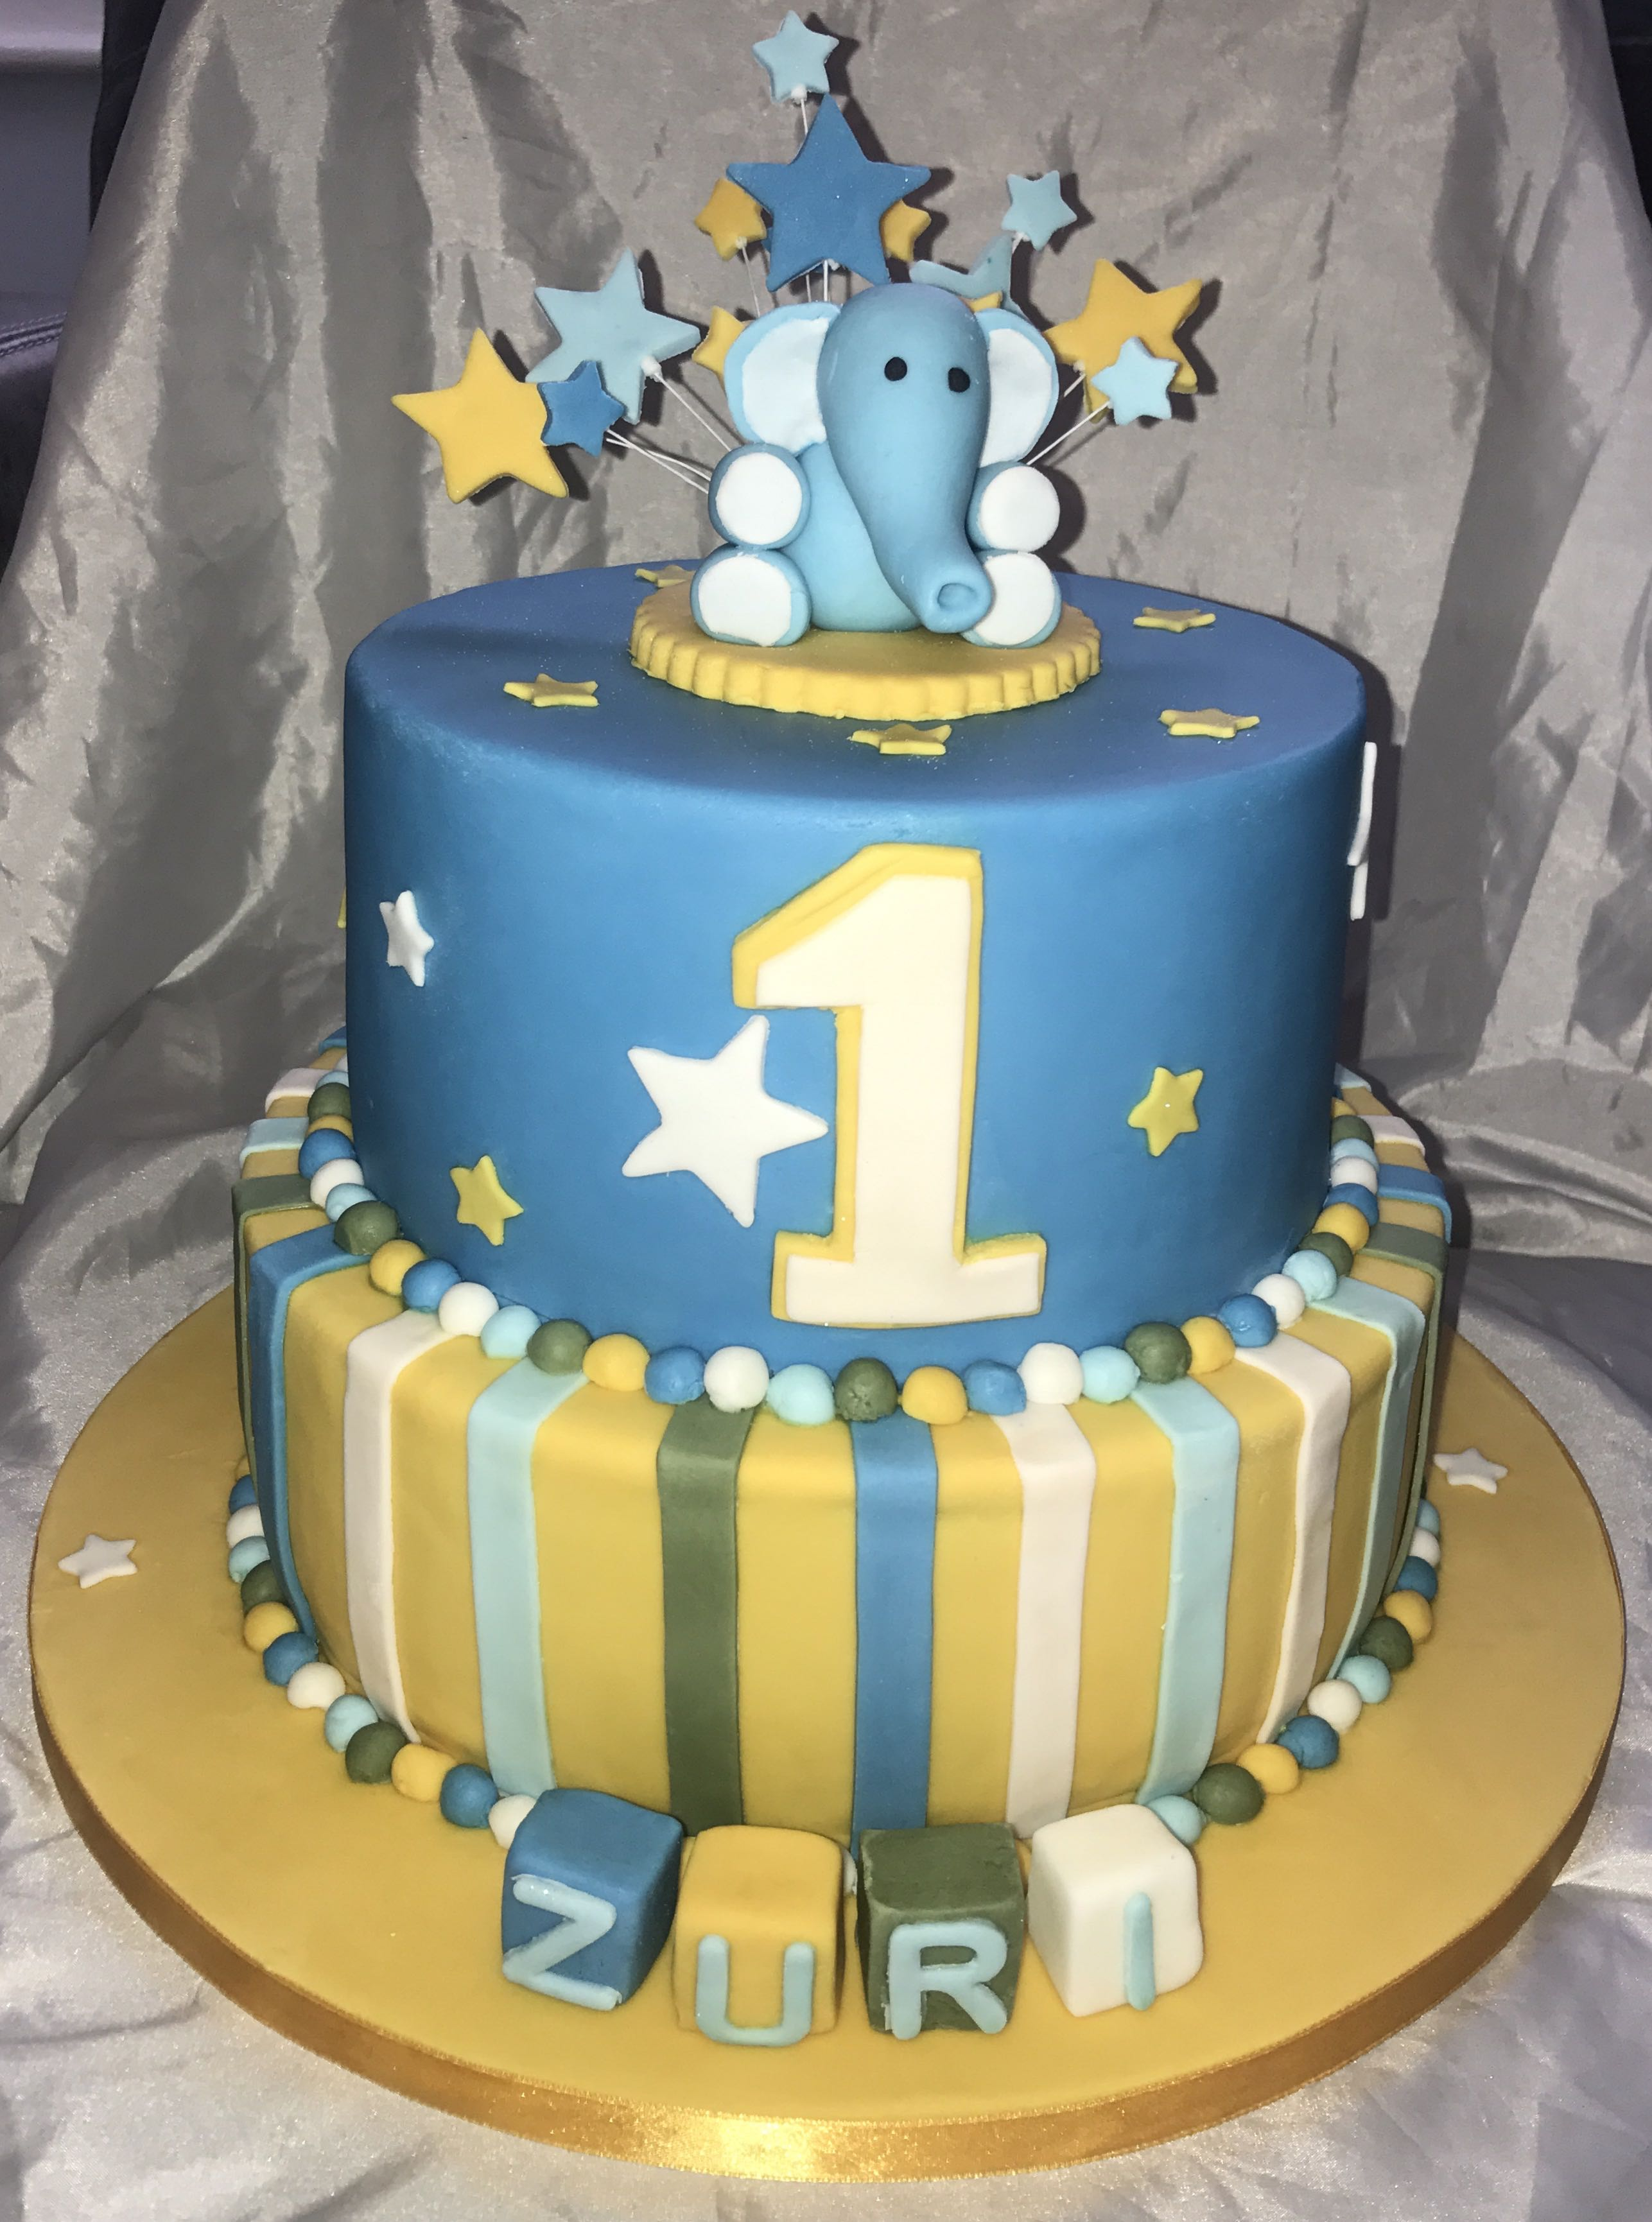 2 Tier 1st Birthday Cake